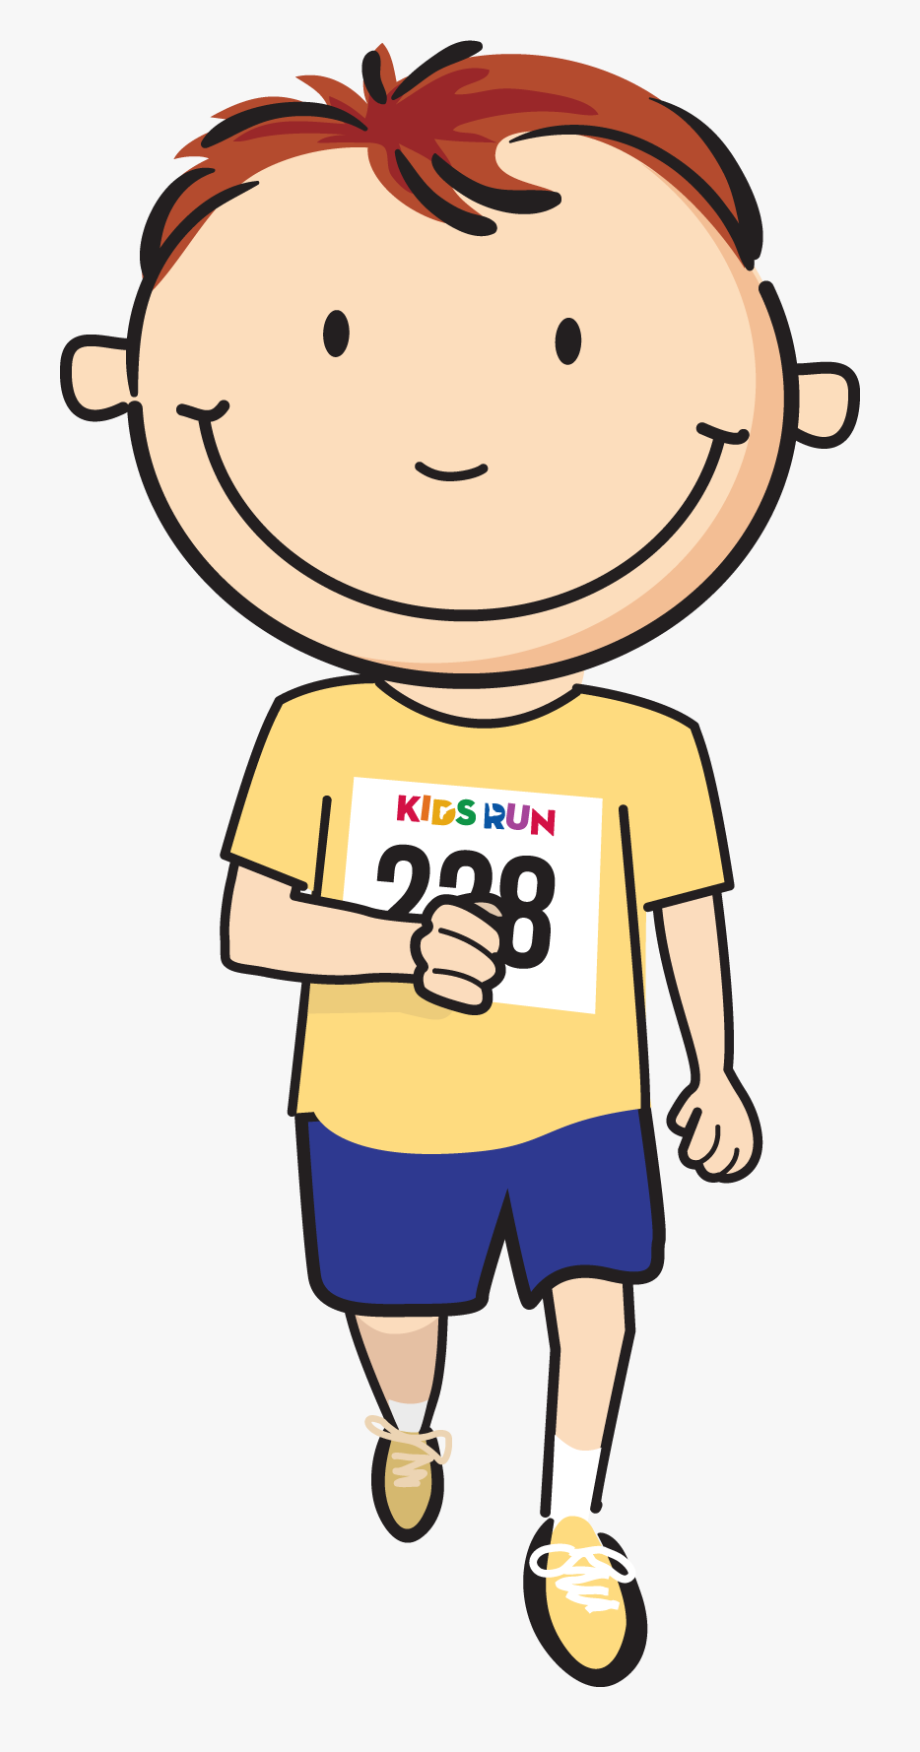 Kids running a race clipart free stock Clipart Royalty Free Kids Running A Race Clipart - Kids Run ... free stock